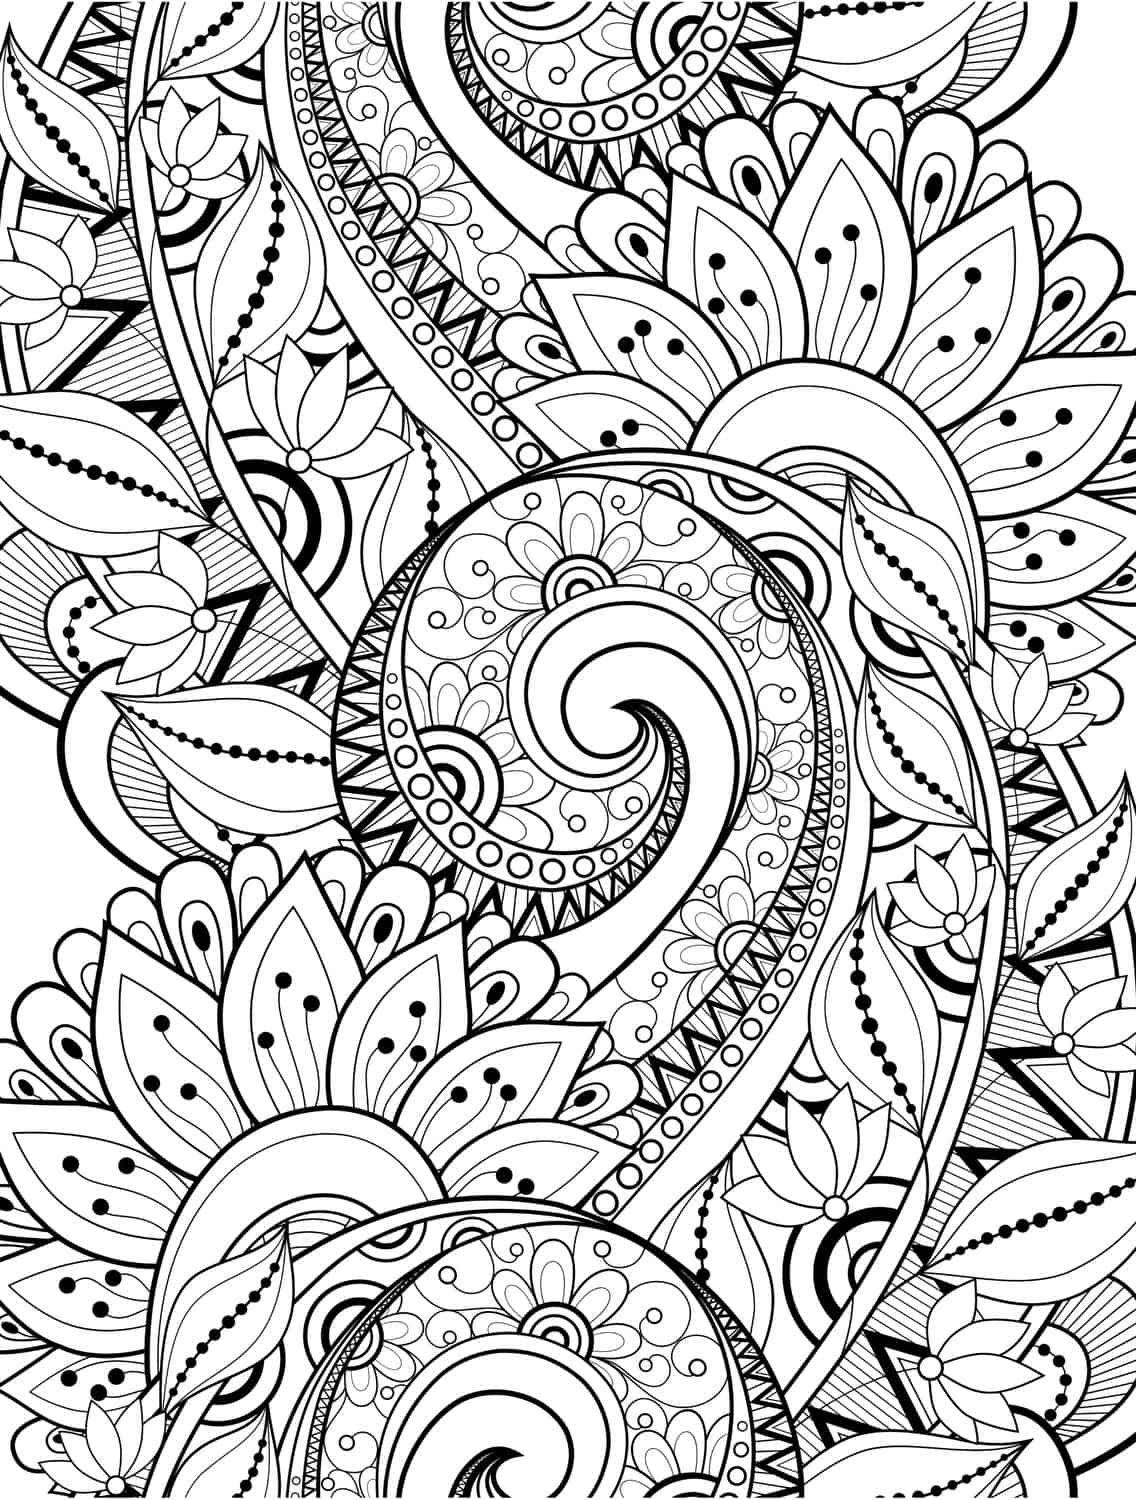 15 CRAZY Busy Coloring Pages for Adults Page 6 of 16 Nerdy Mamma